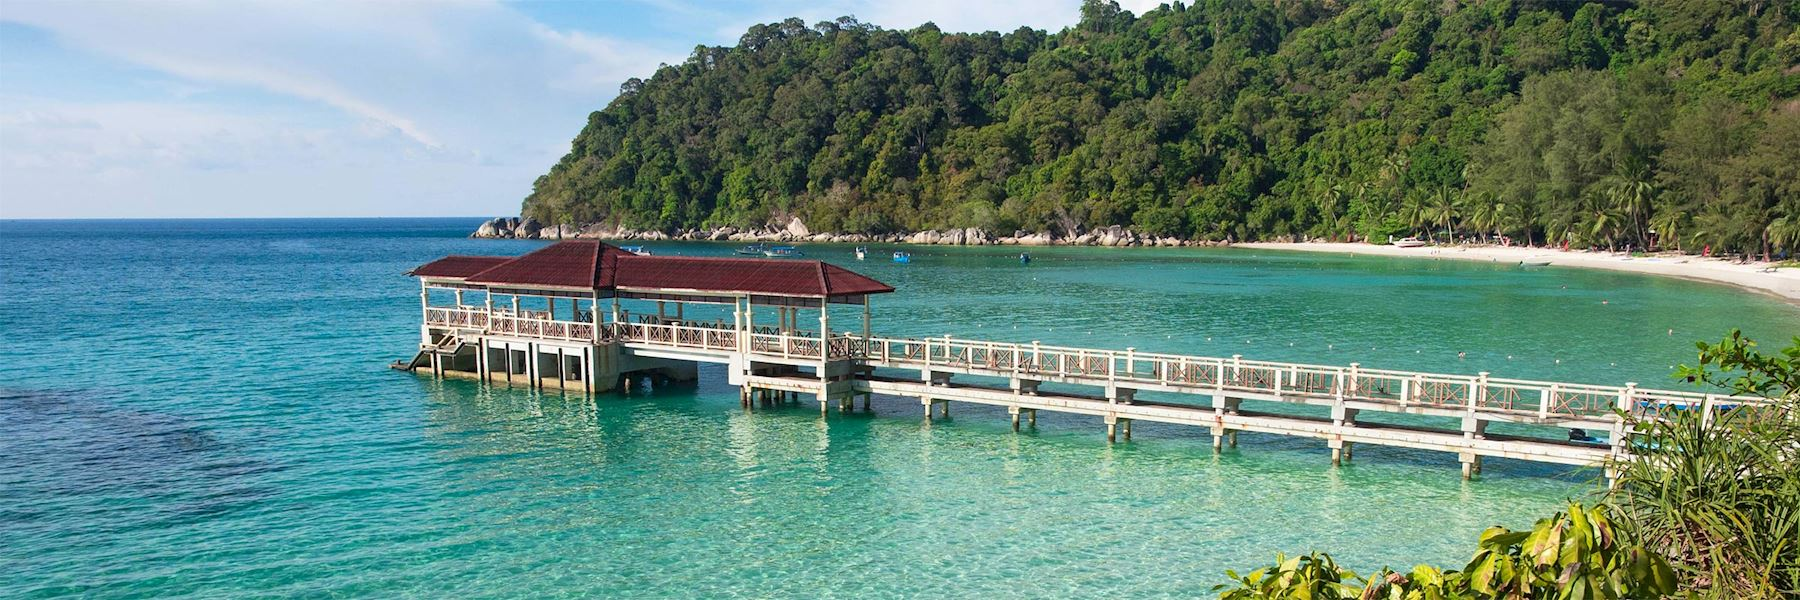 Visit Perhentian Islands, Malaysia